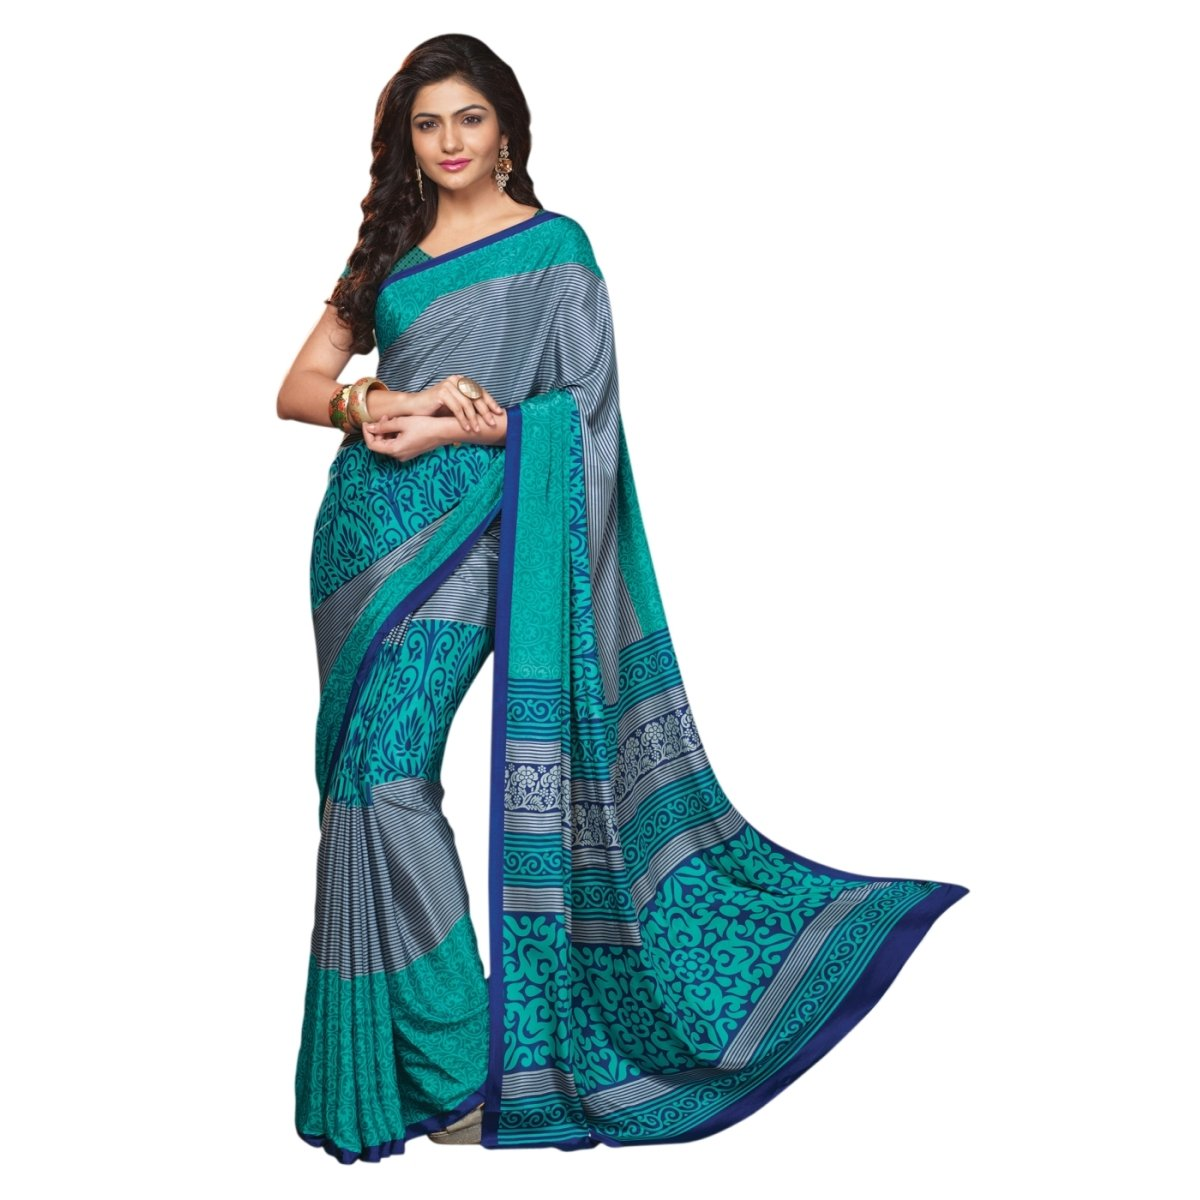 Triveni Women's Indian Grey Printed Crape Saree Sari Triveni Sarees TSRD1497